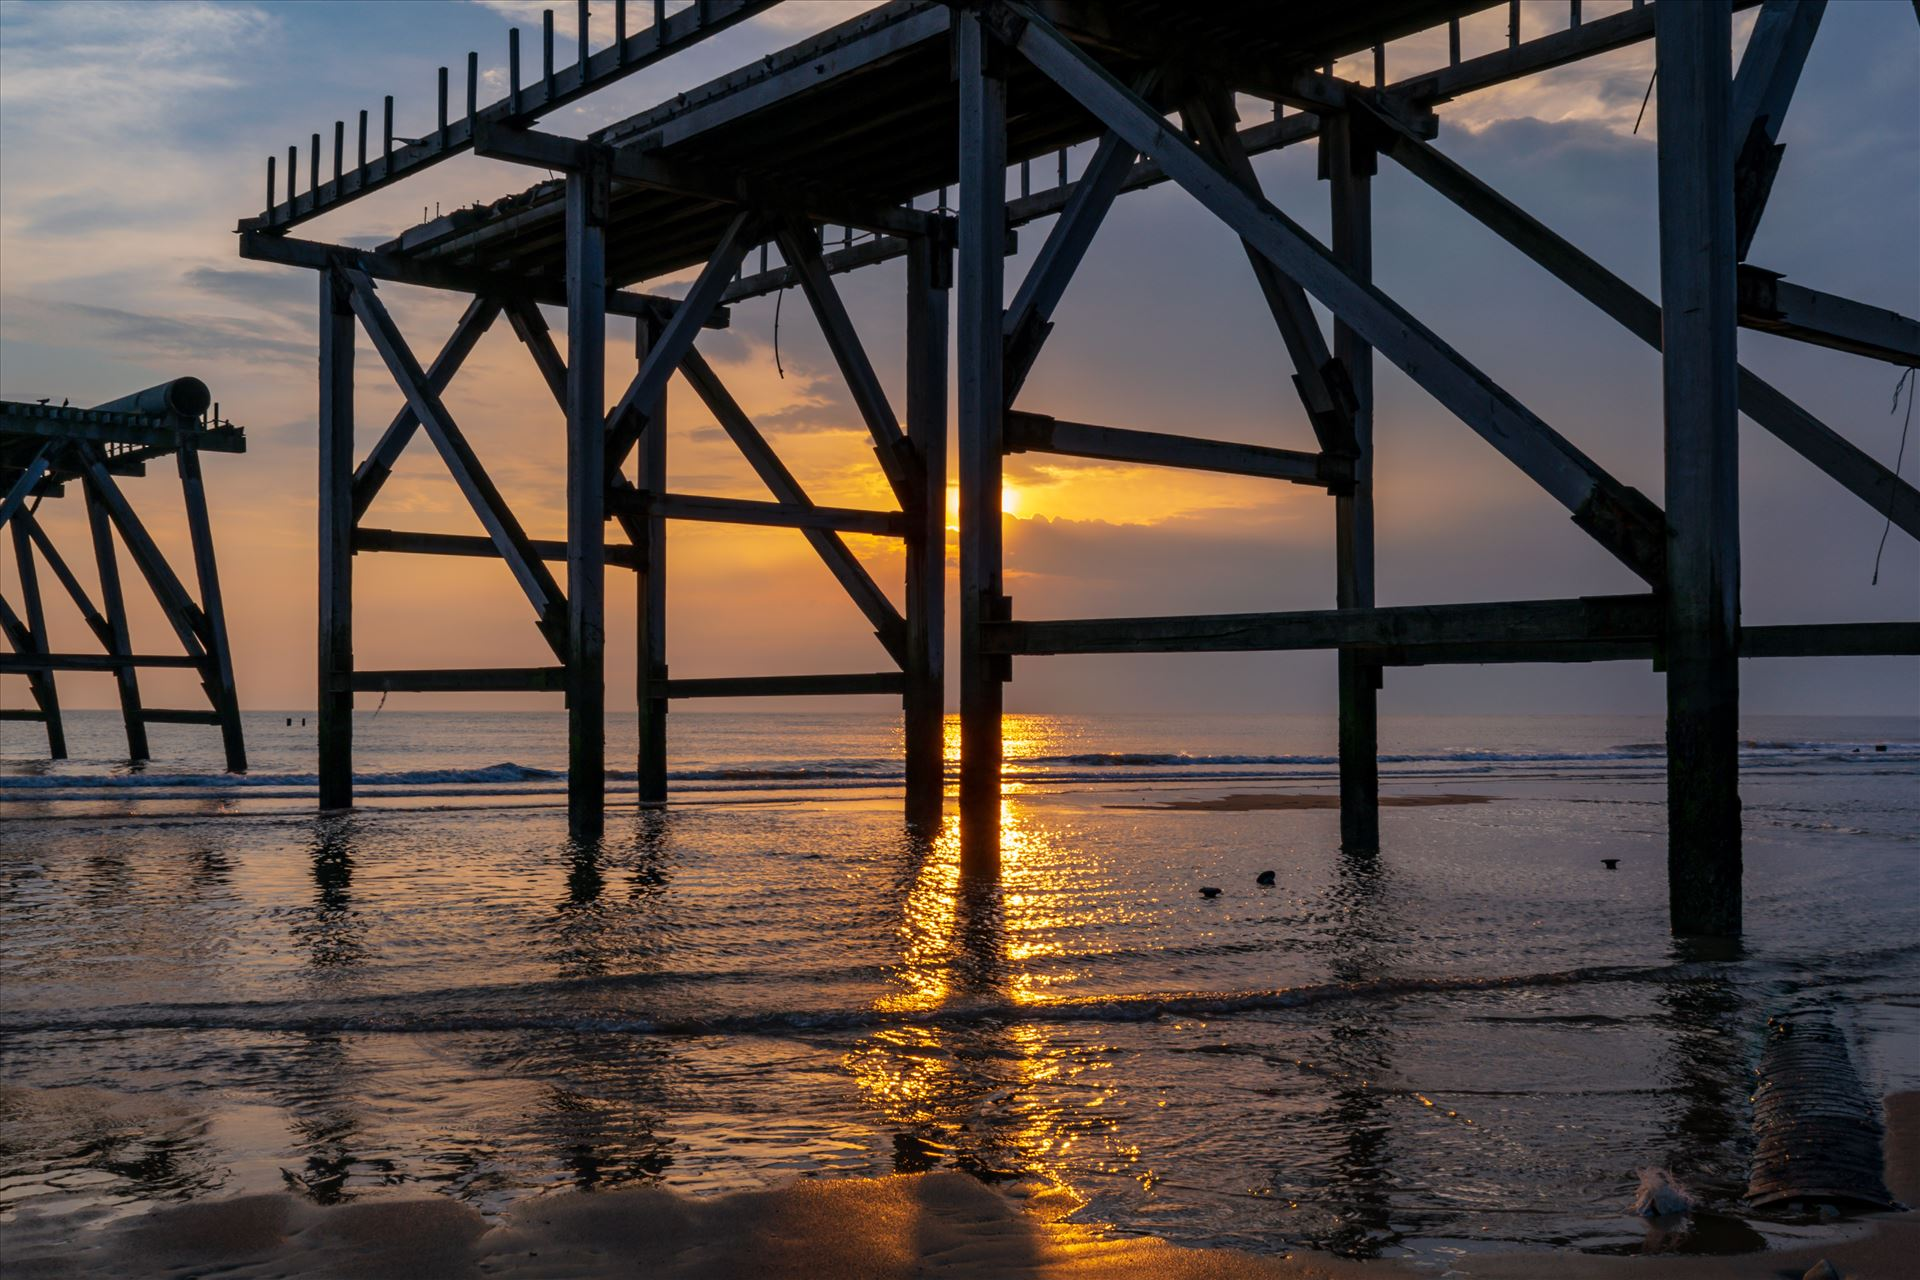 Sunrise Steetley Pier 1 - You have to be up early for a shot like this by AJ Stoves Photography